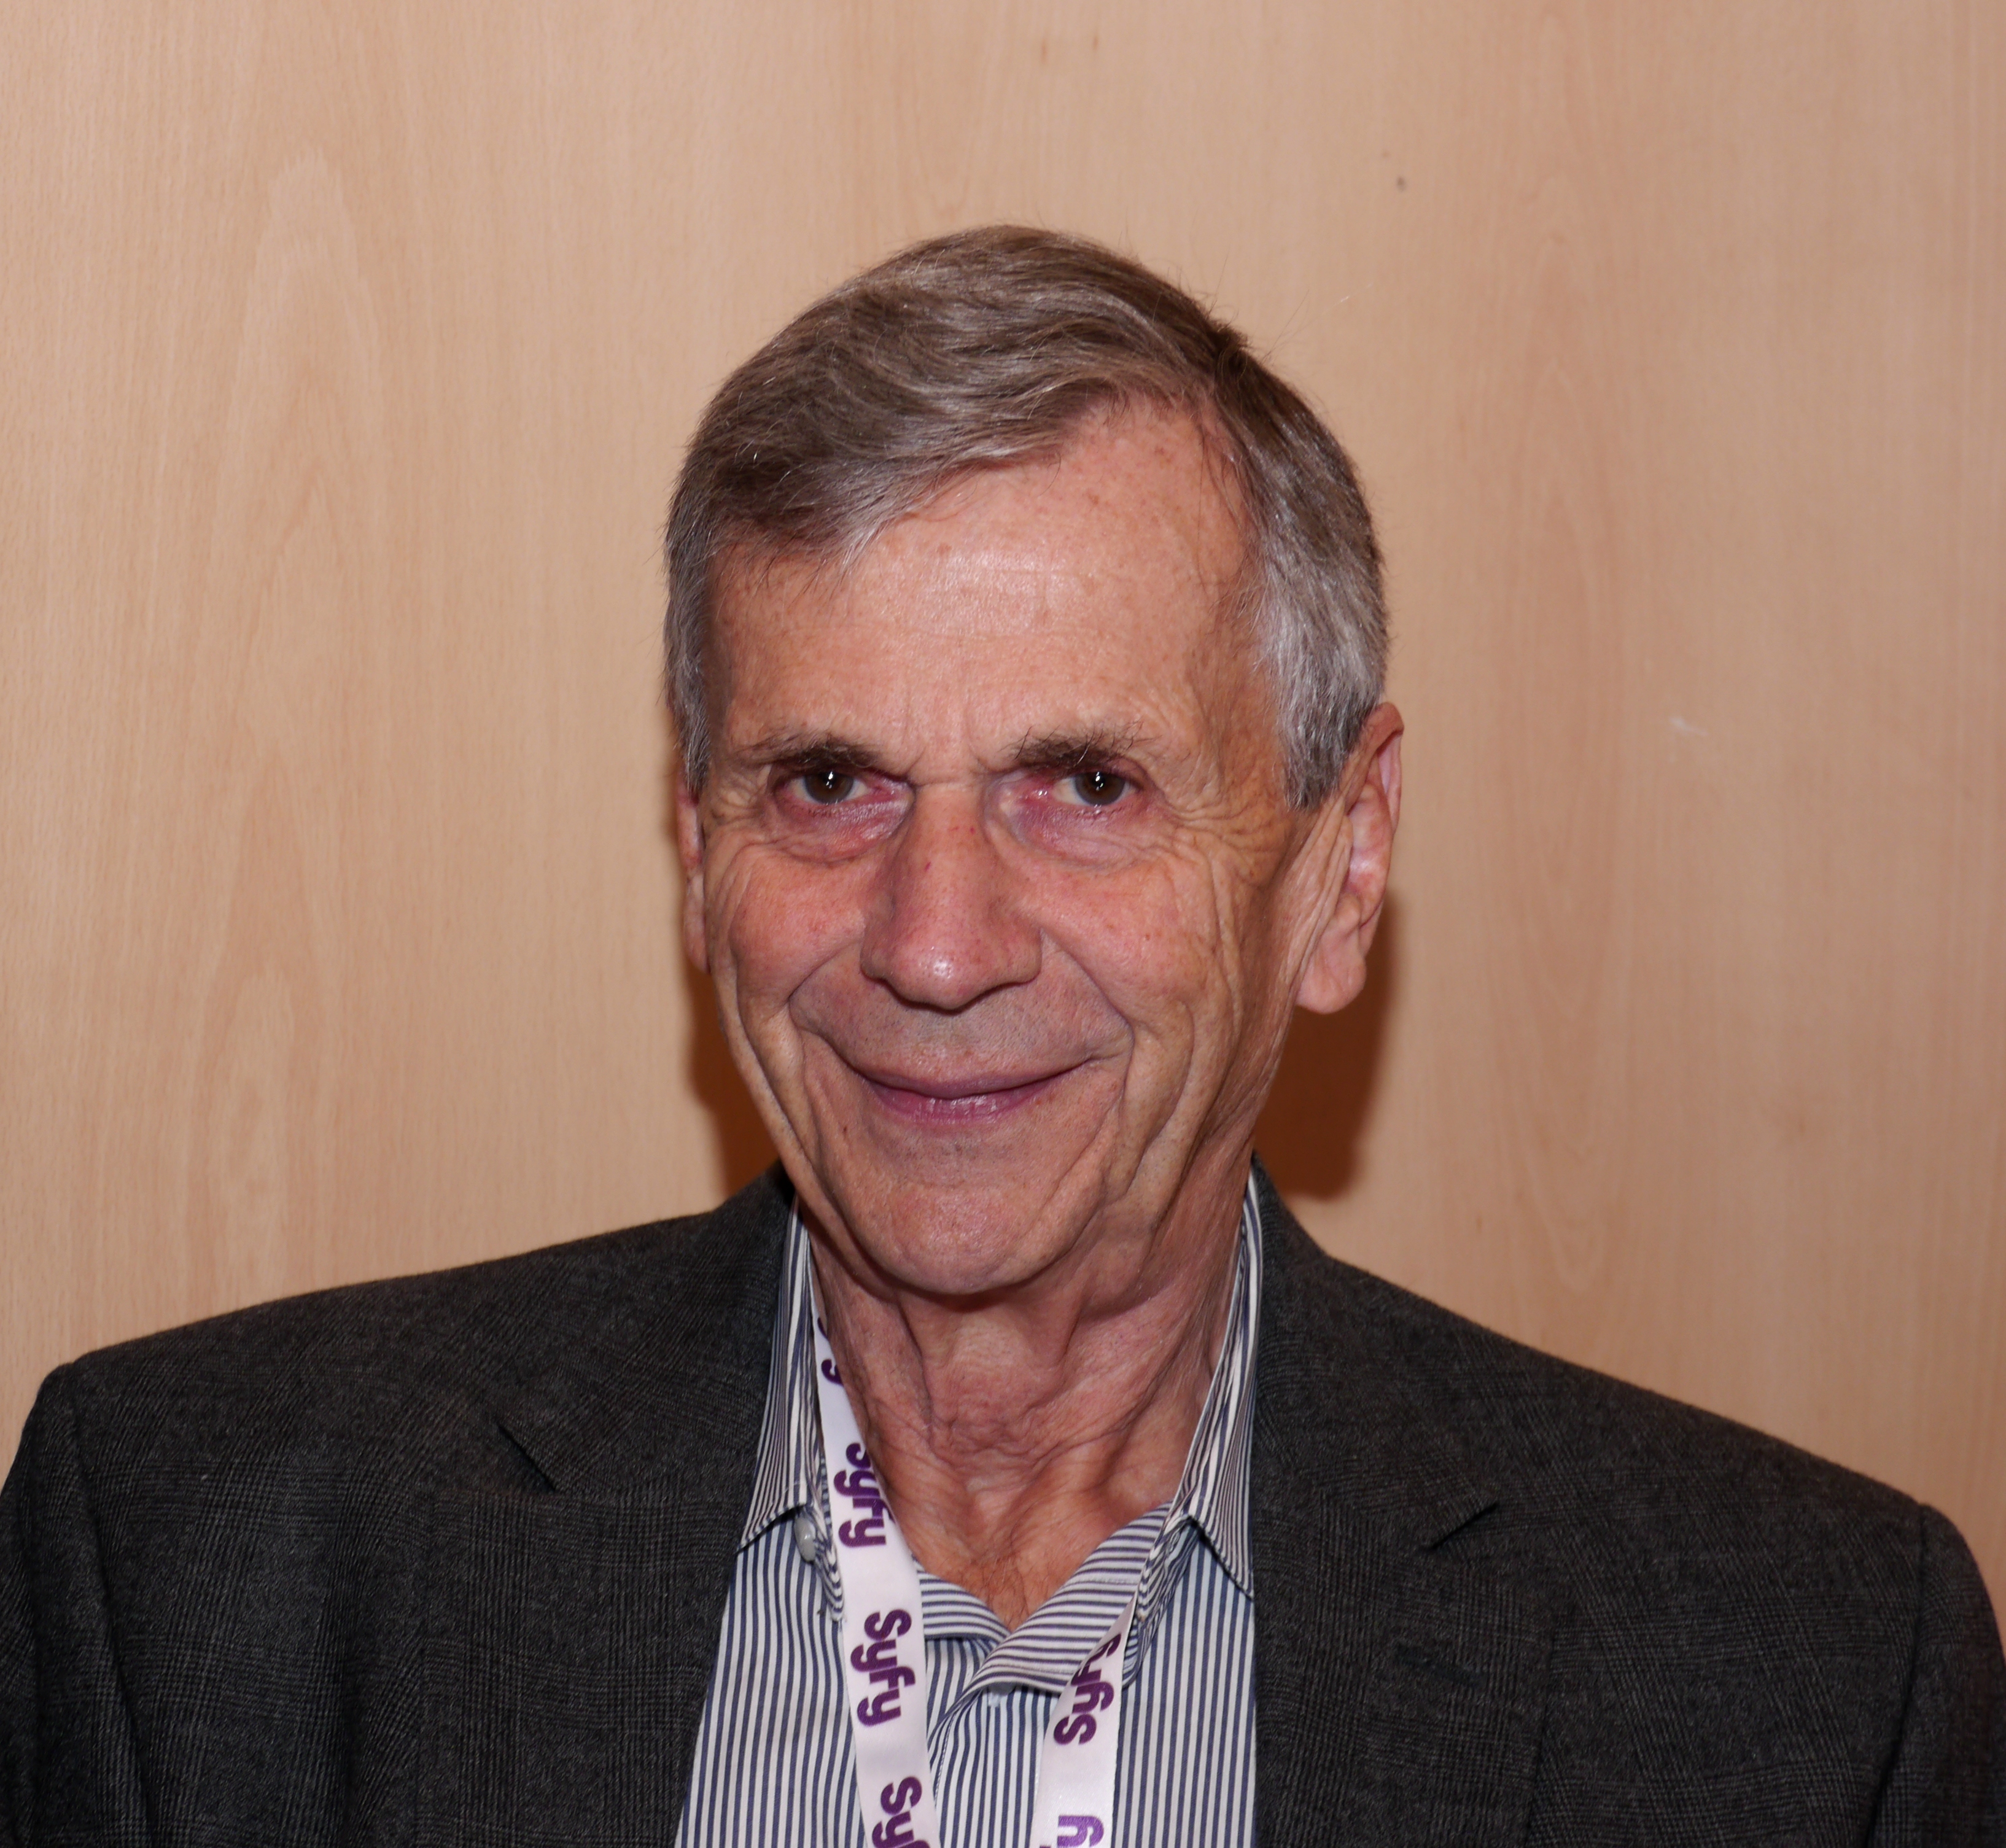 Toulouse Game Show 2011 - William B Davis - P1280947.jpg